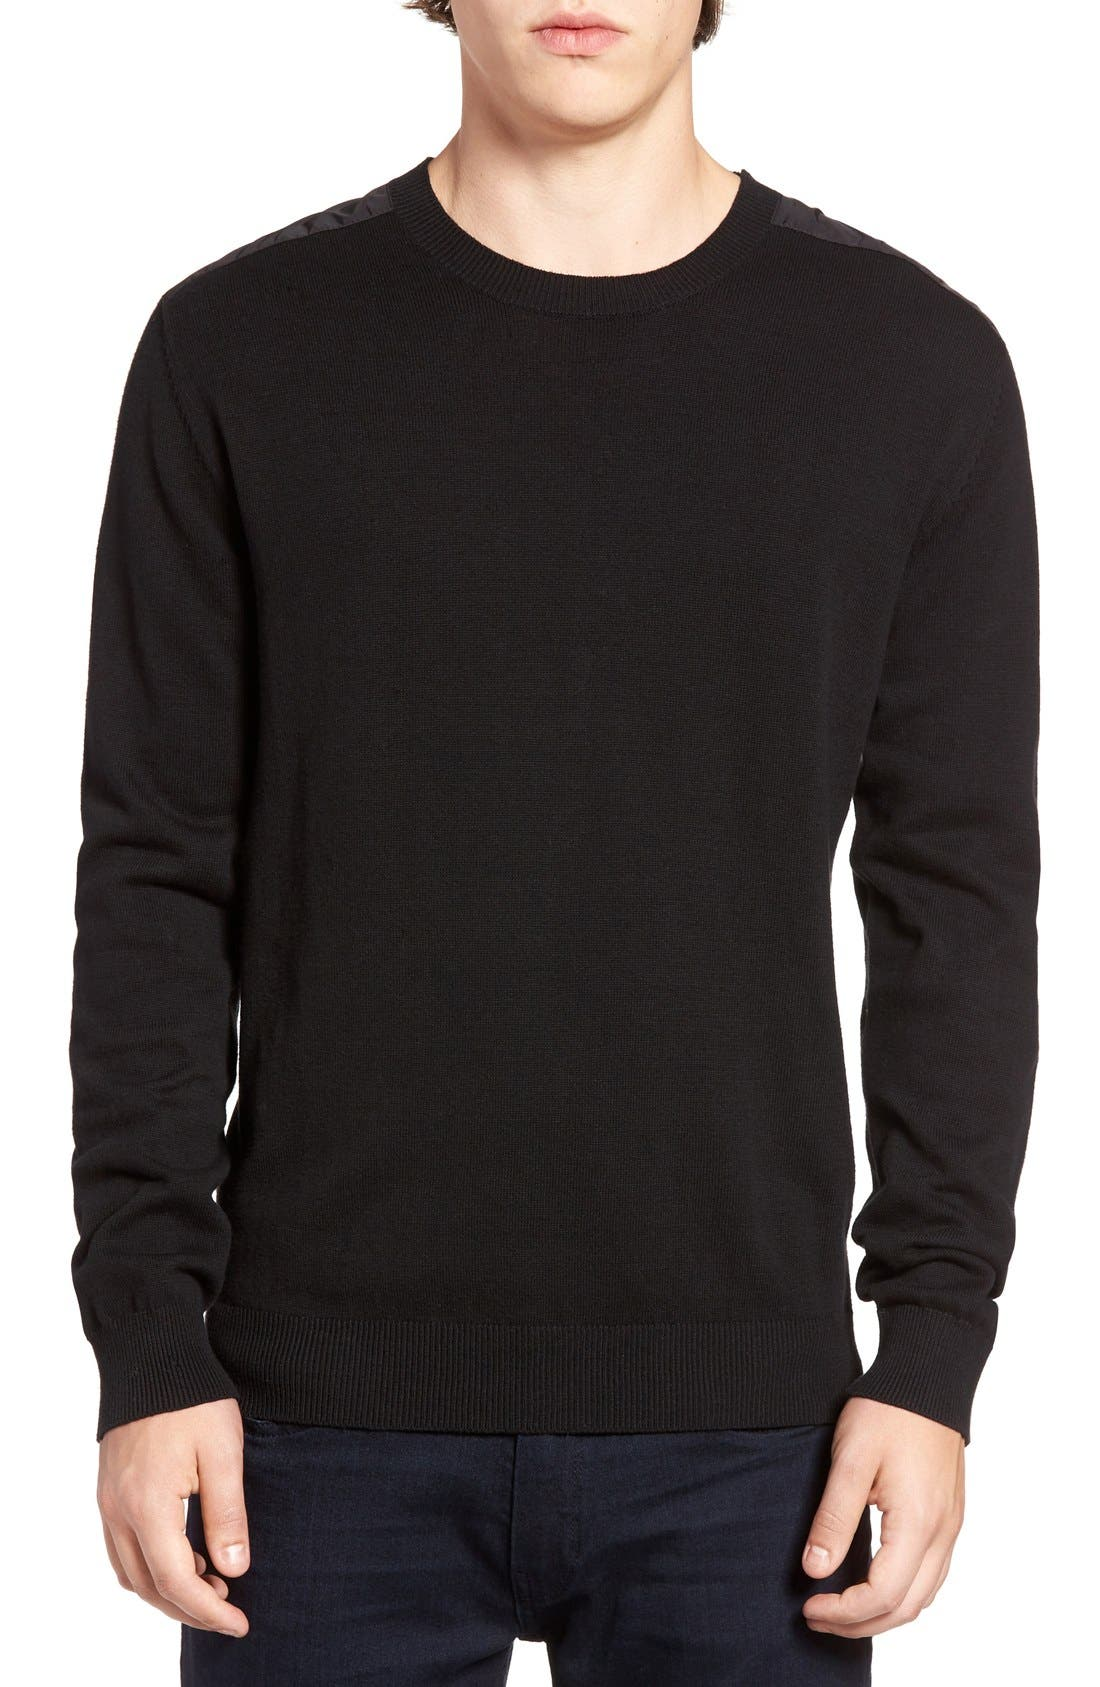 Alternate Image 1 Selected - French Connection Nylon Trim Pullover